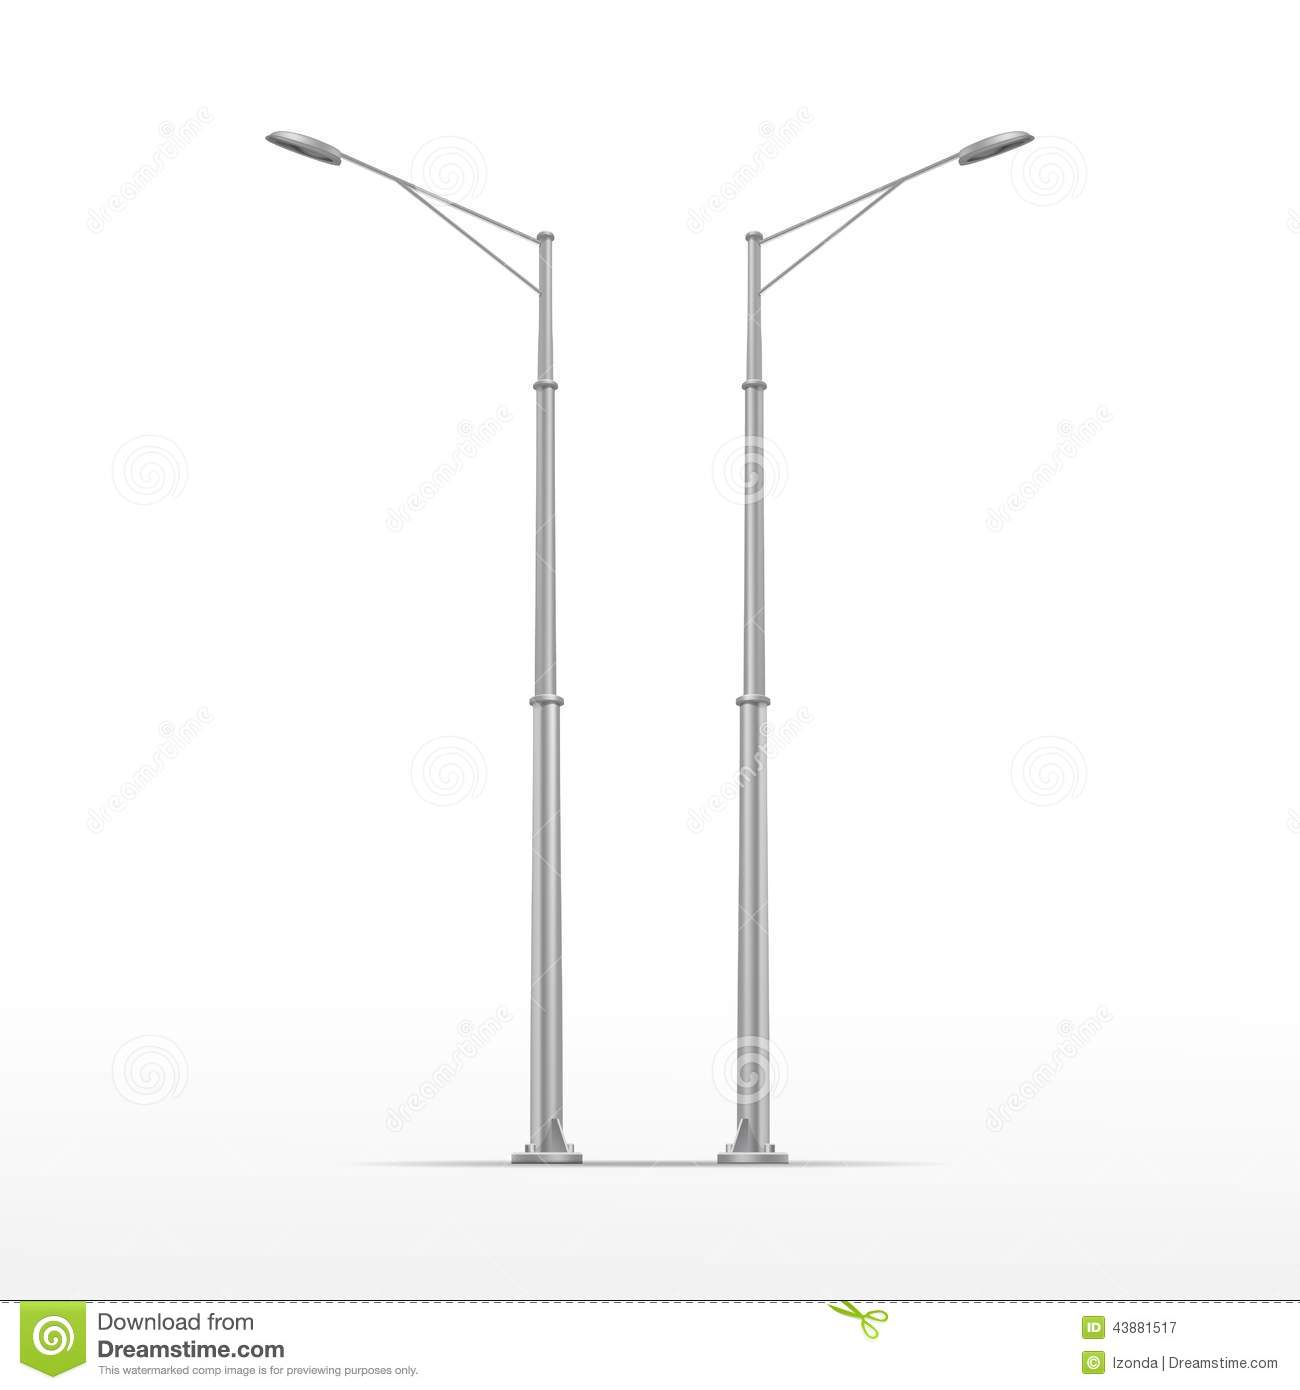 Vector Street Lamp Isolated On White Background Stock Vector ... for Street Lamp Post Vector  113cpg